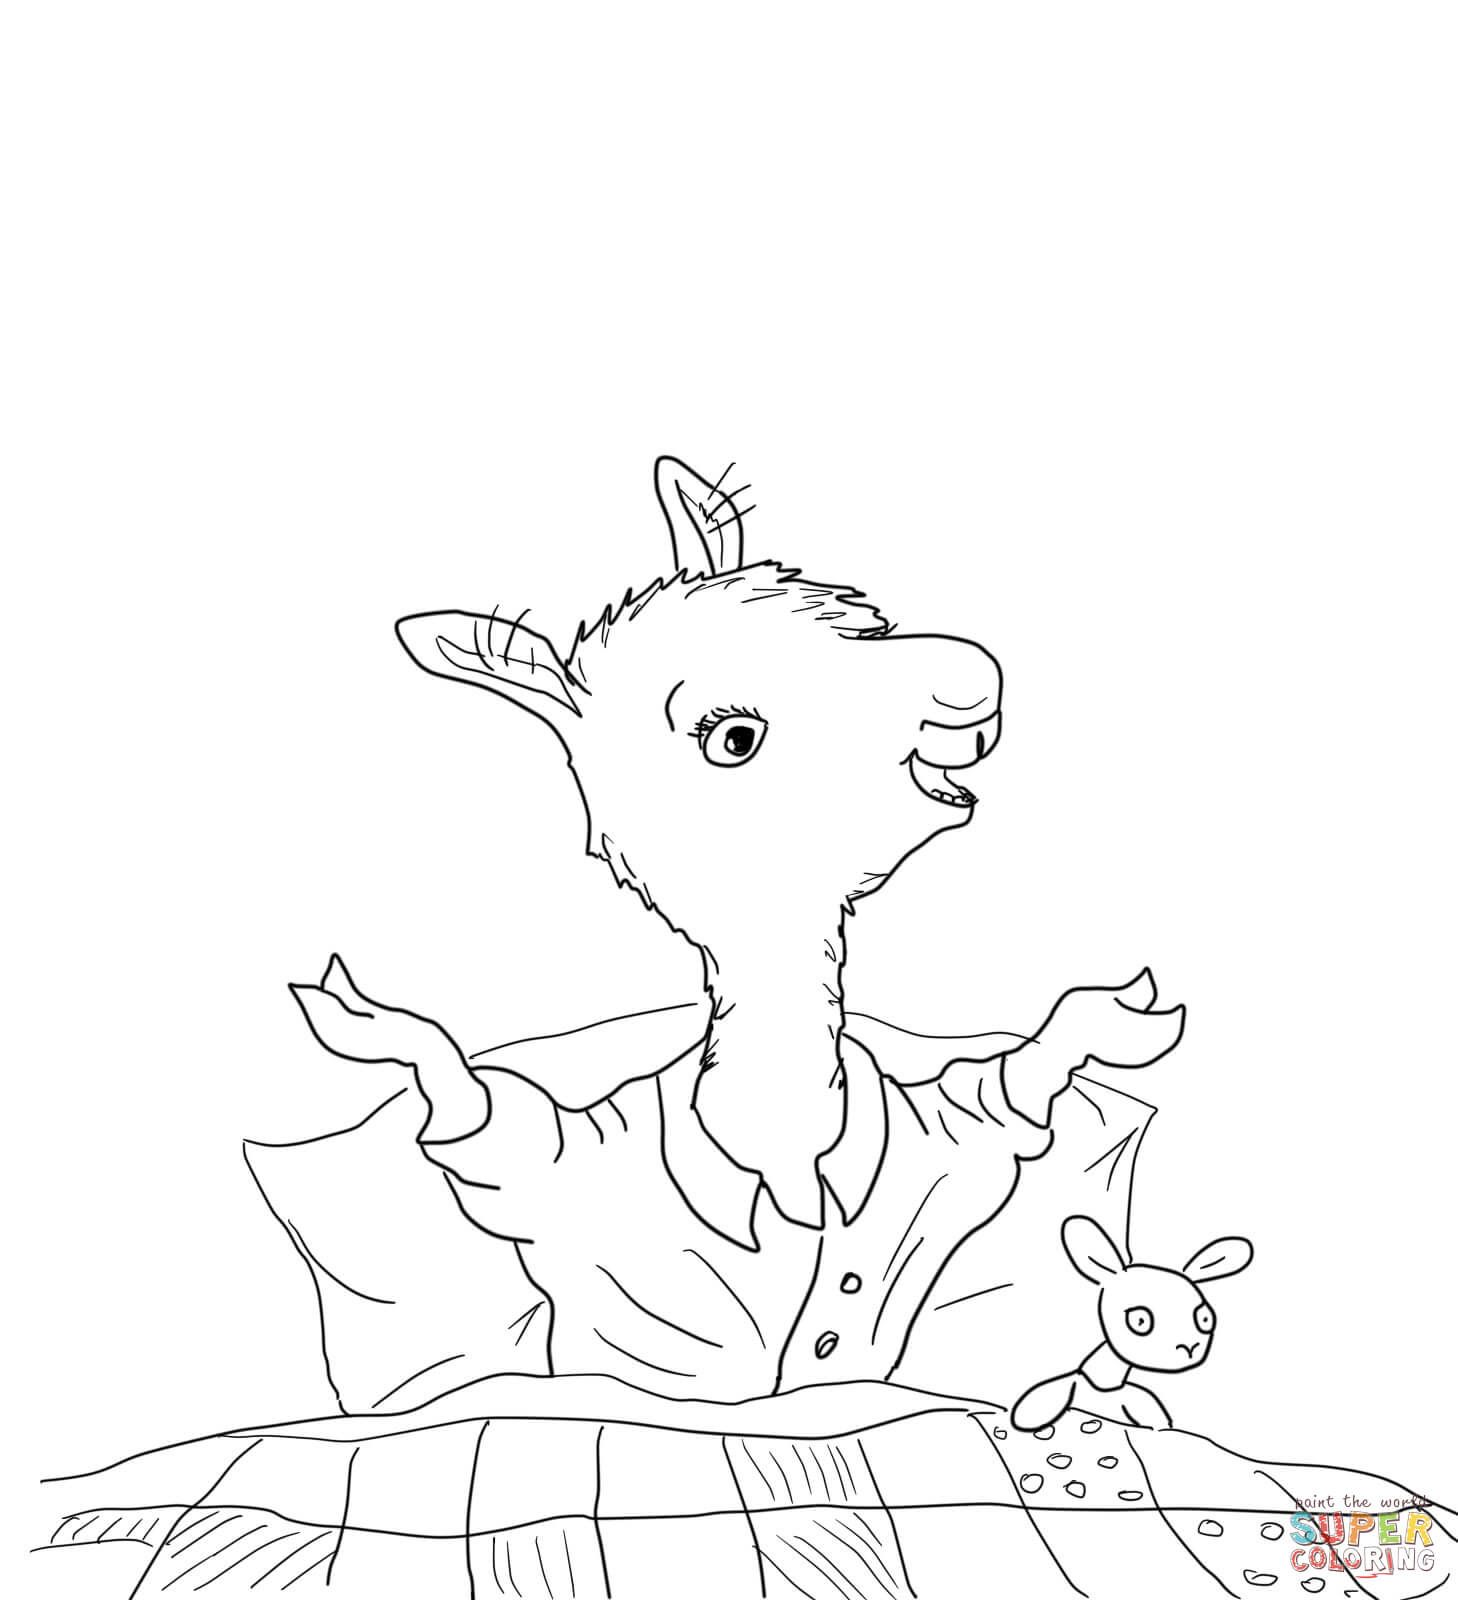 13 Pics Of Preschool Pajama Coloring Pages Pajama Coloring Pages